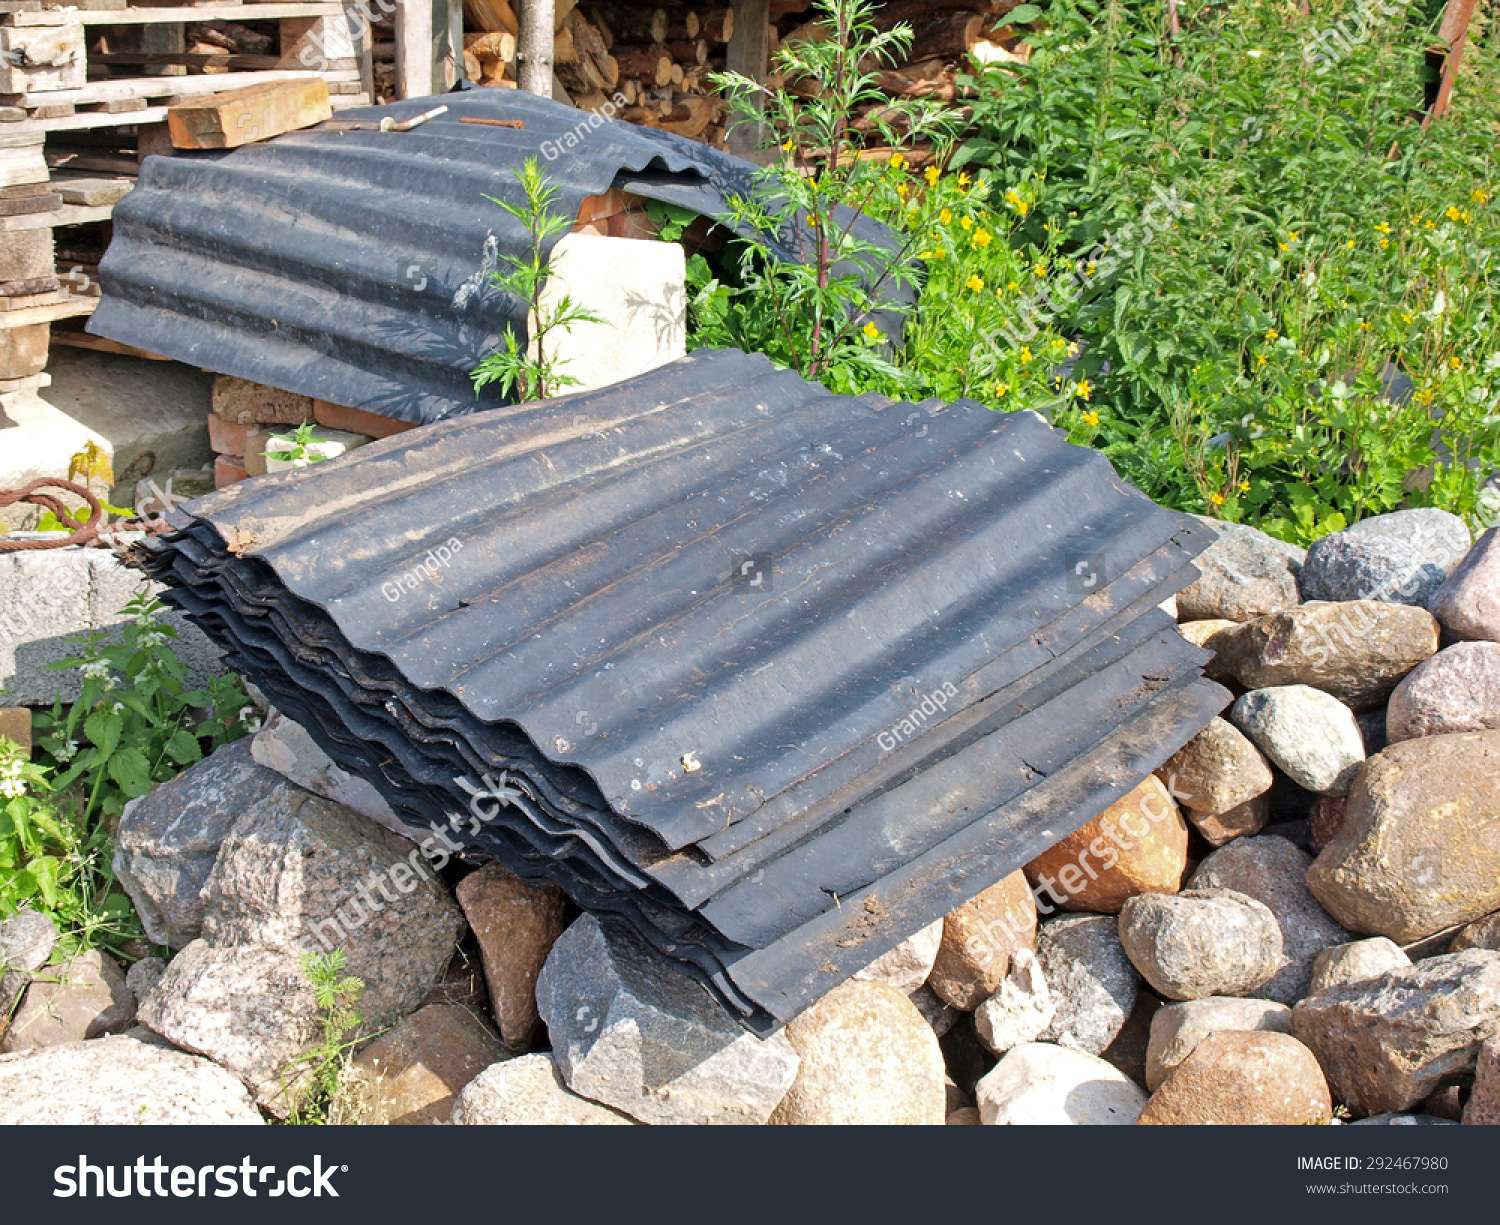 Old Used Black Rubber Roof Tiles Waved Made From Recycled Tires Outdoor  Stacked On Stones.